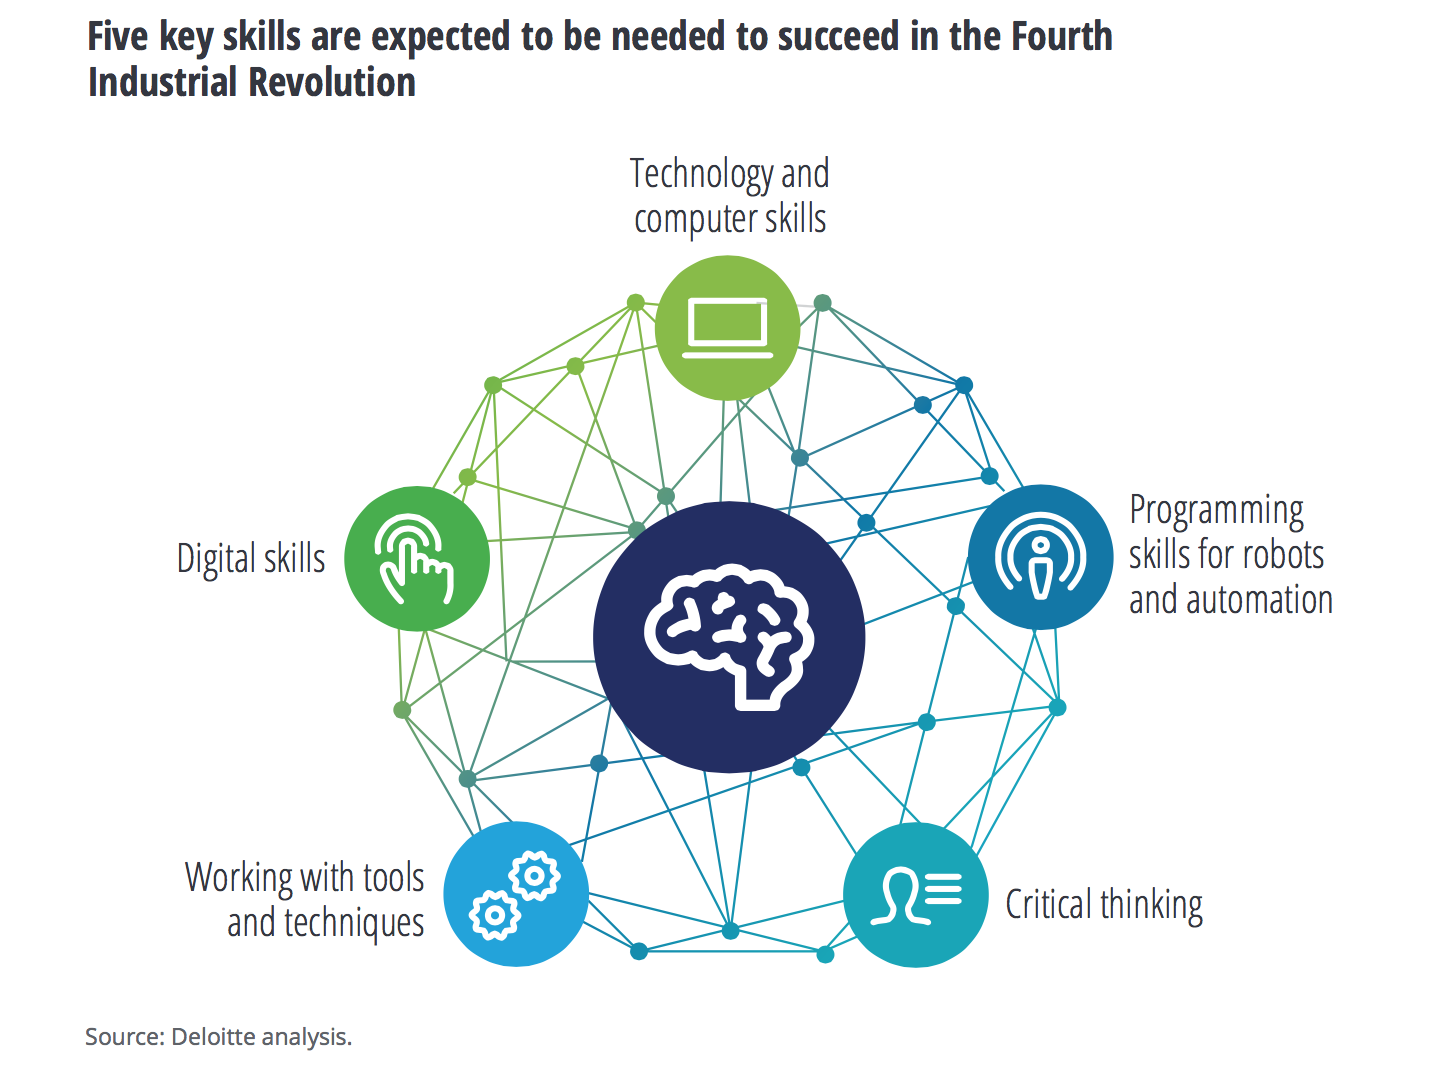 Source Deloitte analysis_The Manufacturing Institute skills gap and future of work study